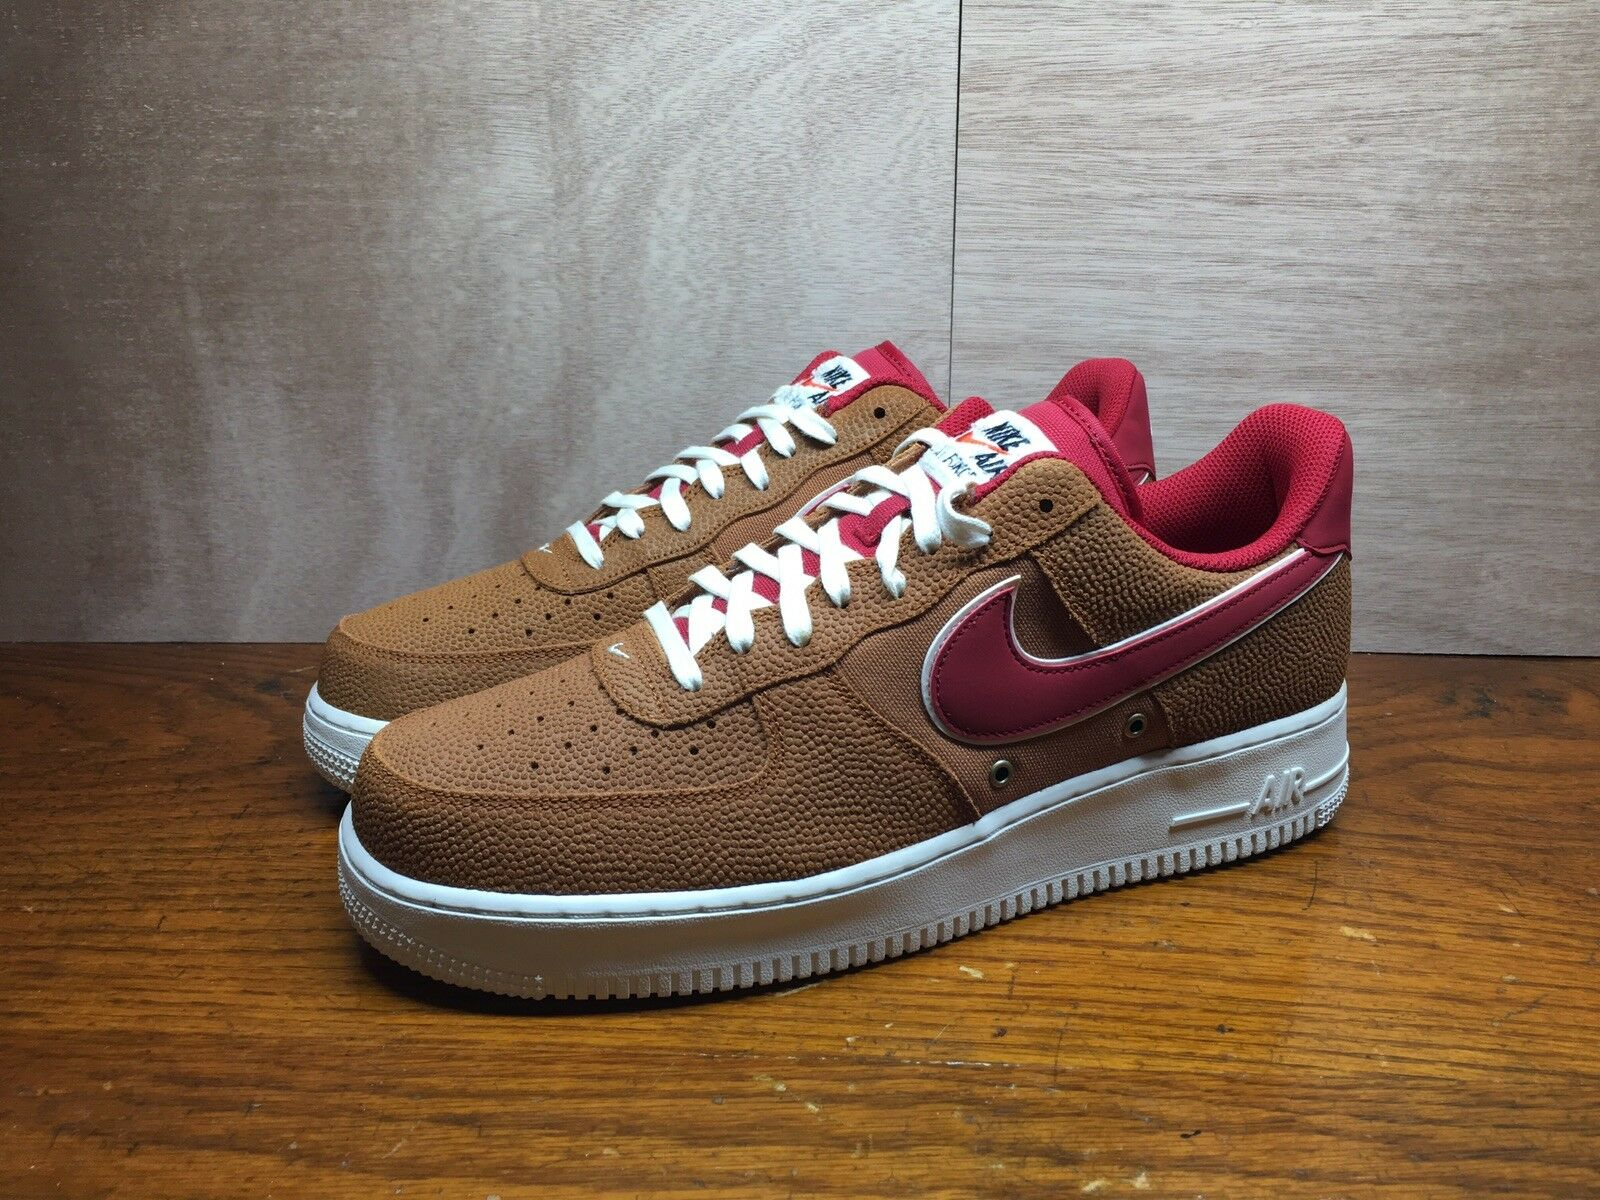 Nike Air Force 1 AF1 Low Low Low TAWNY BROWN BASKETBALL LEATHER RED 718152-206 sz 8 77c46c